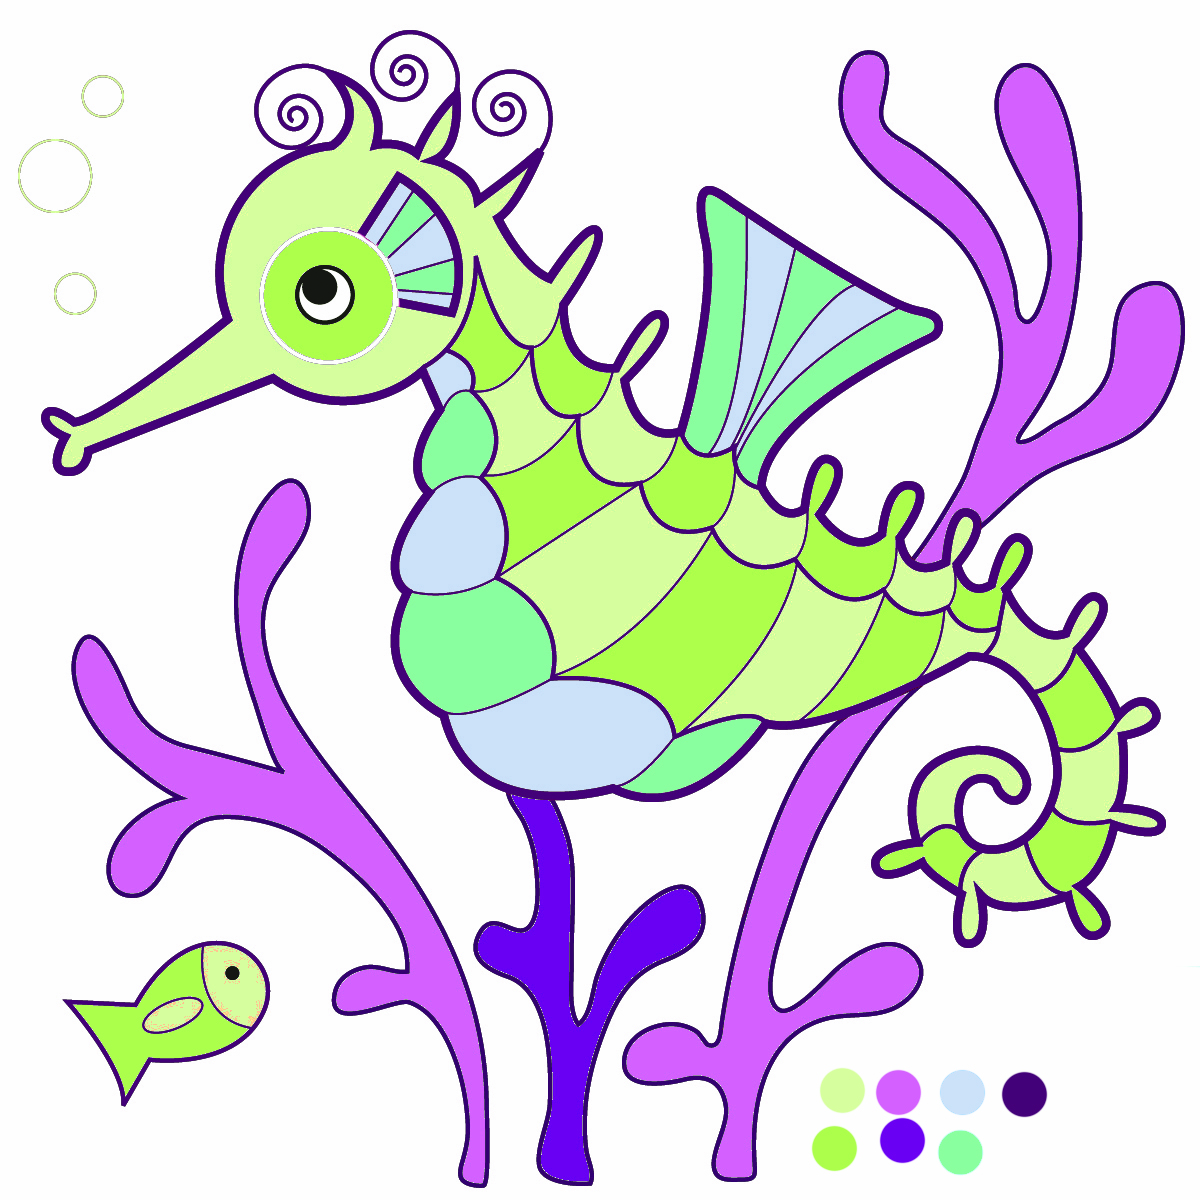 Hippocampus Clipart | Clipart Panda - Free Clipart Images